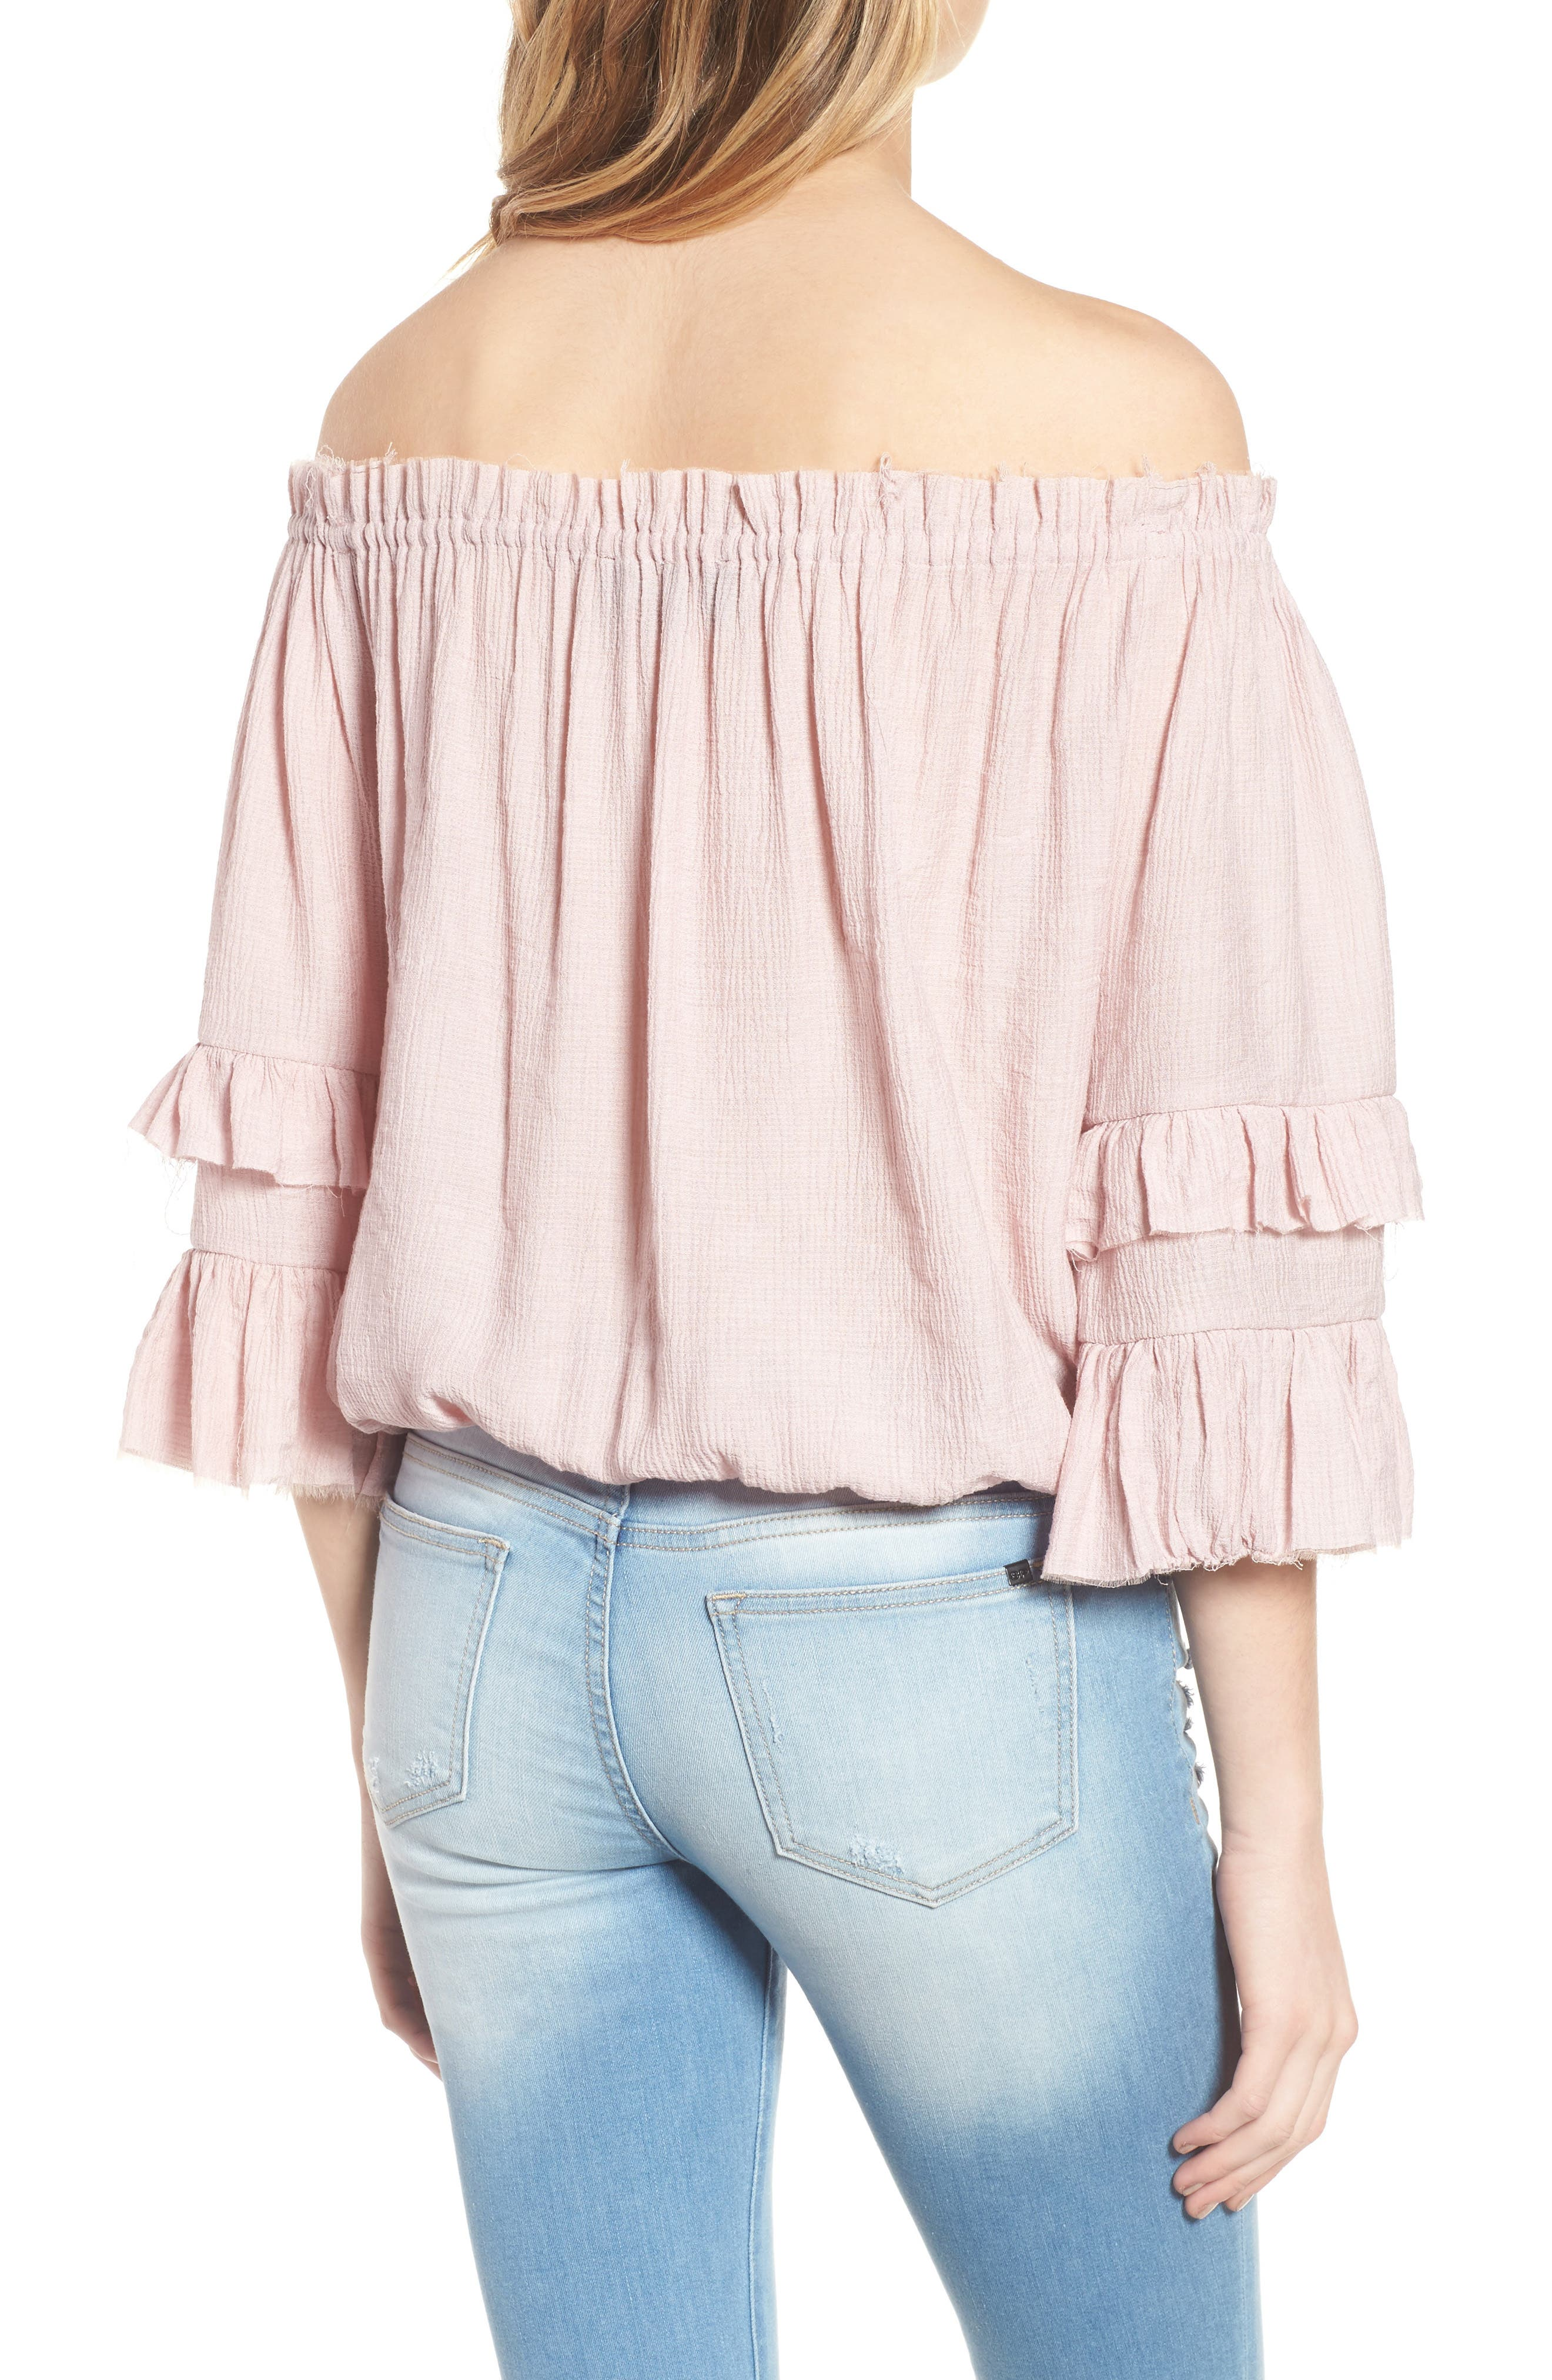 Know One Cares Tiered Off the Shoulder Top,                             Alternate thumbnail 2, color,